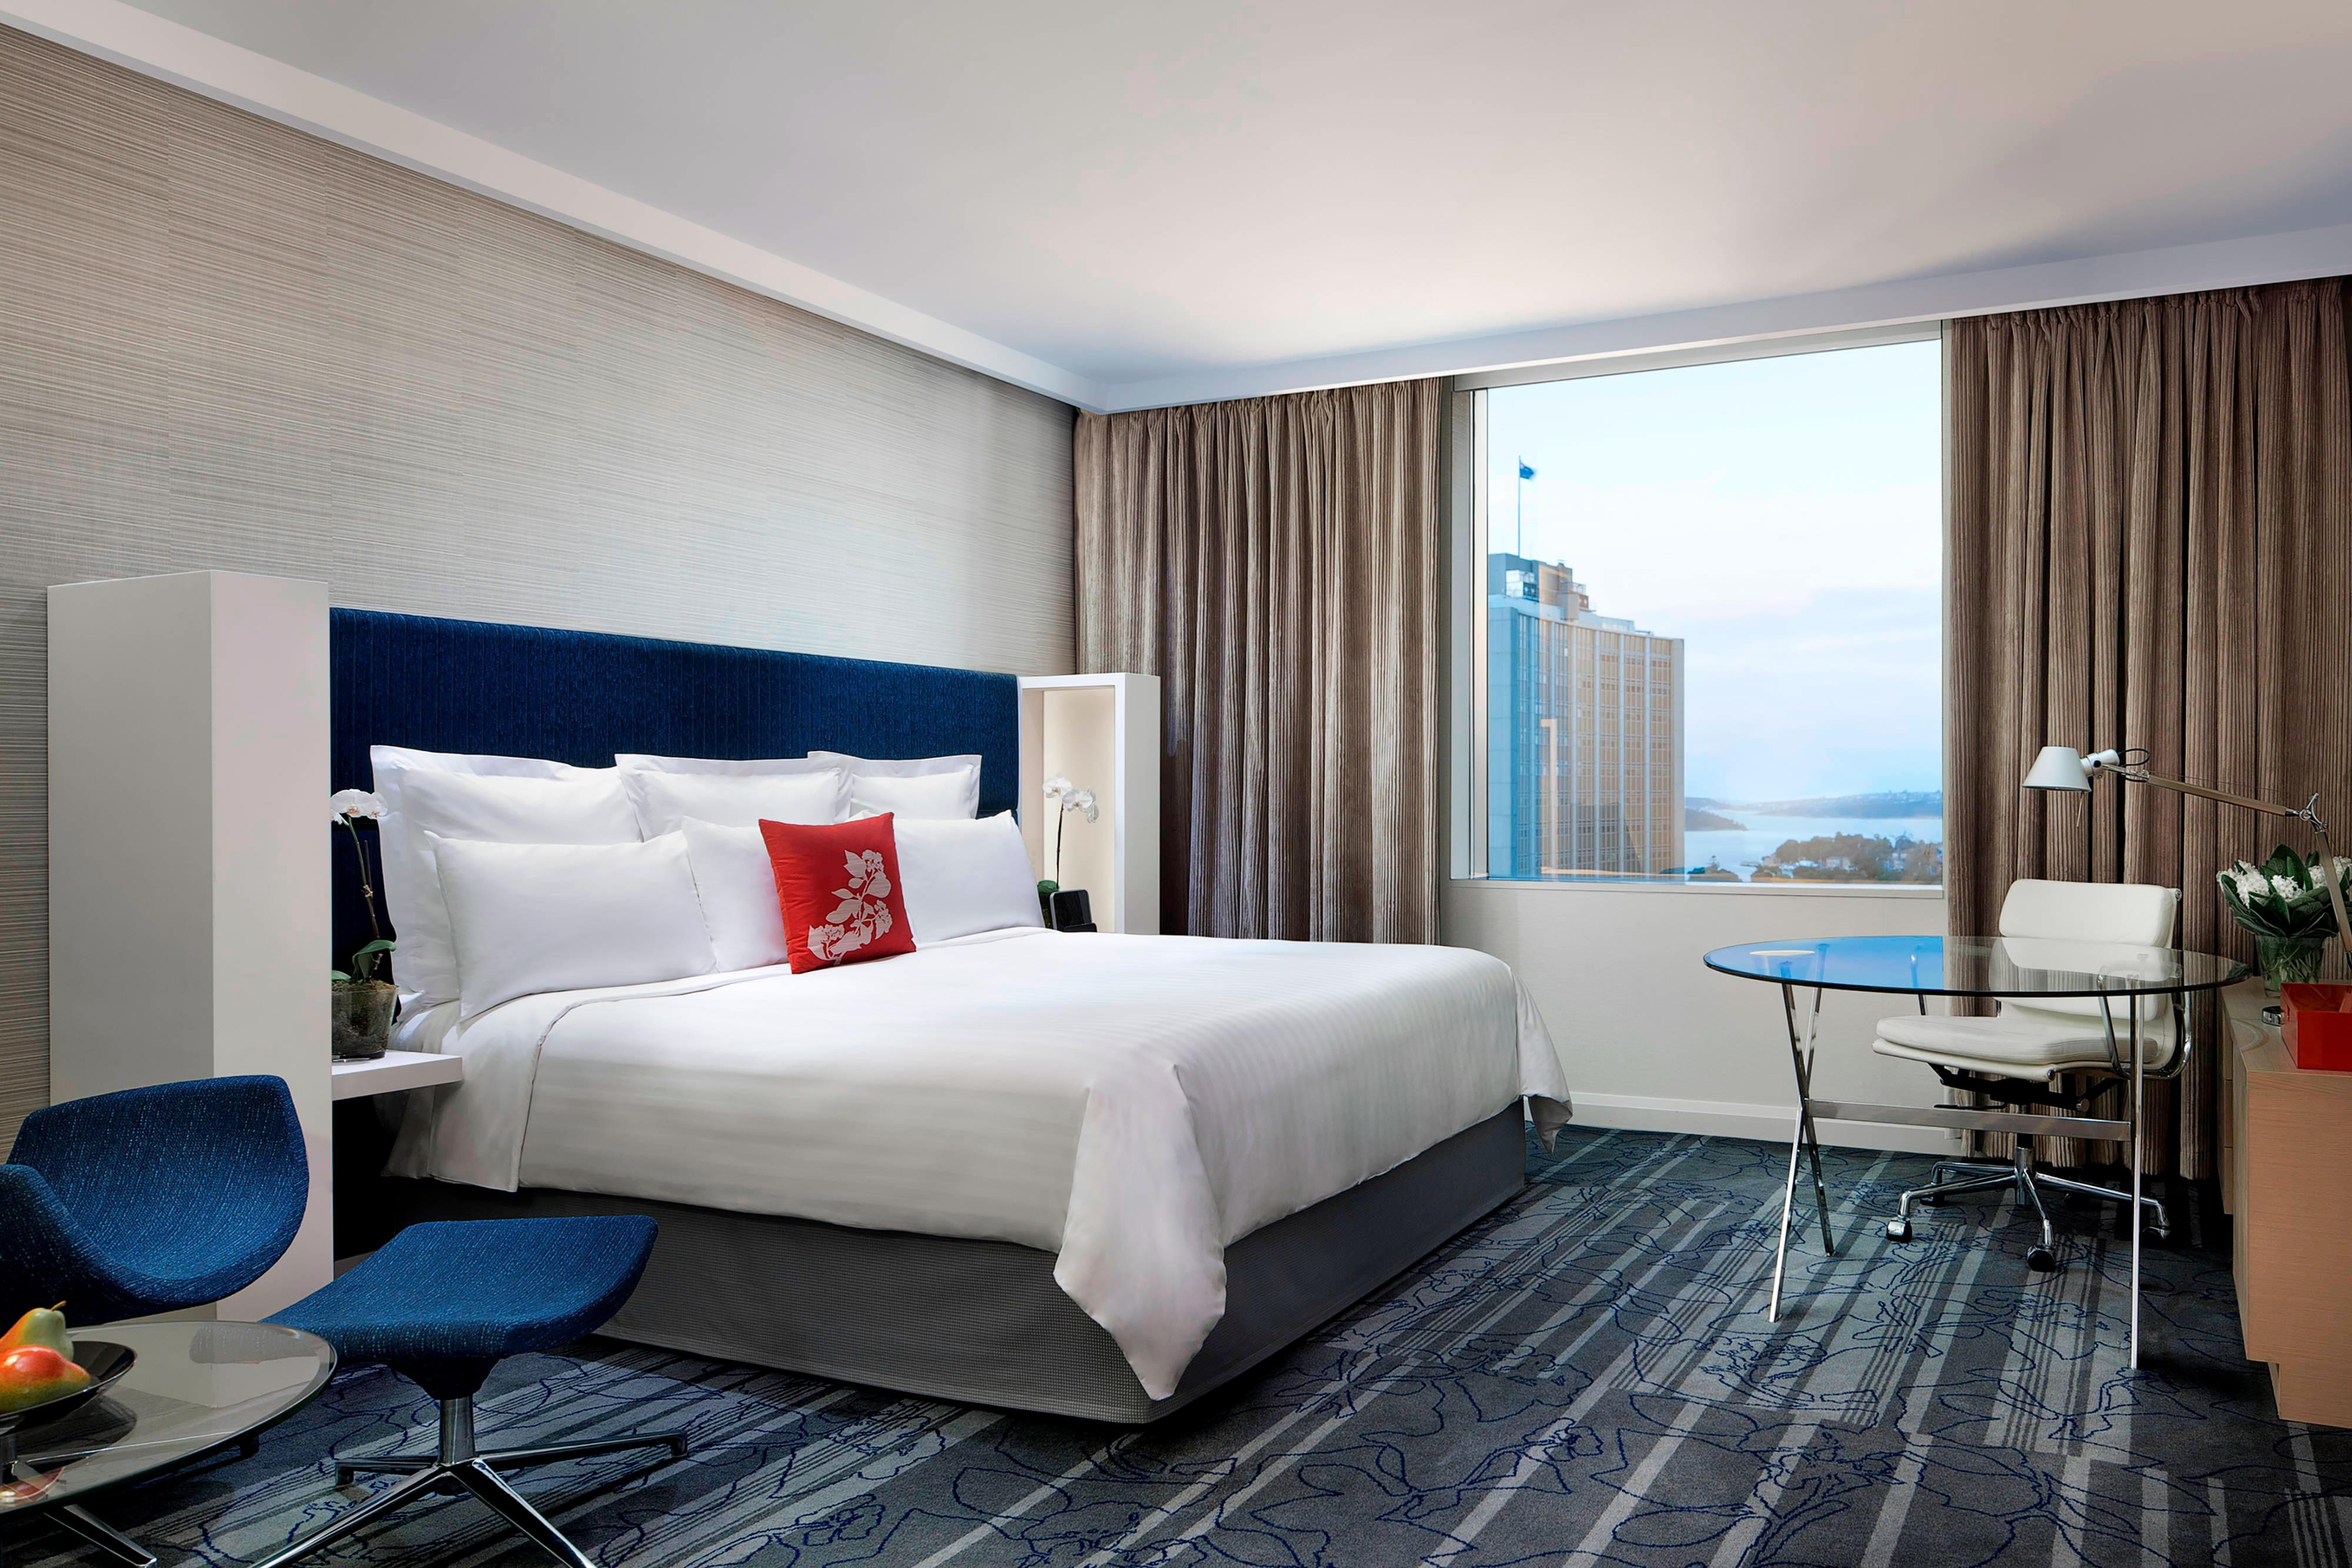 Room Rates Of Marriott Hotel Sydney